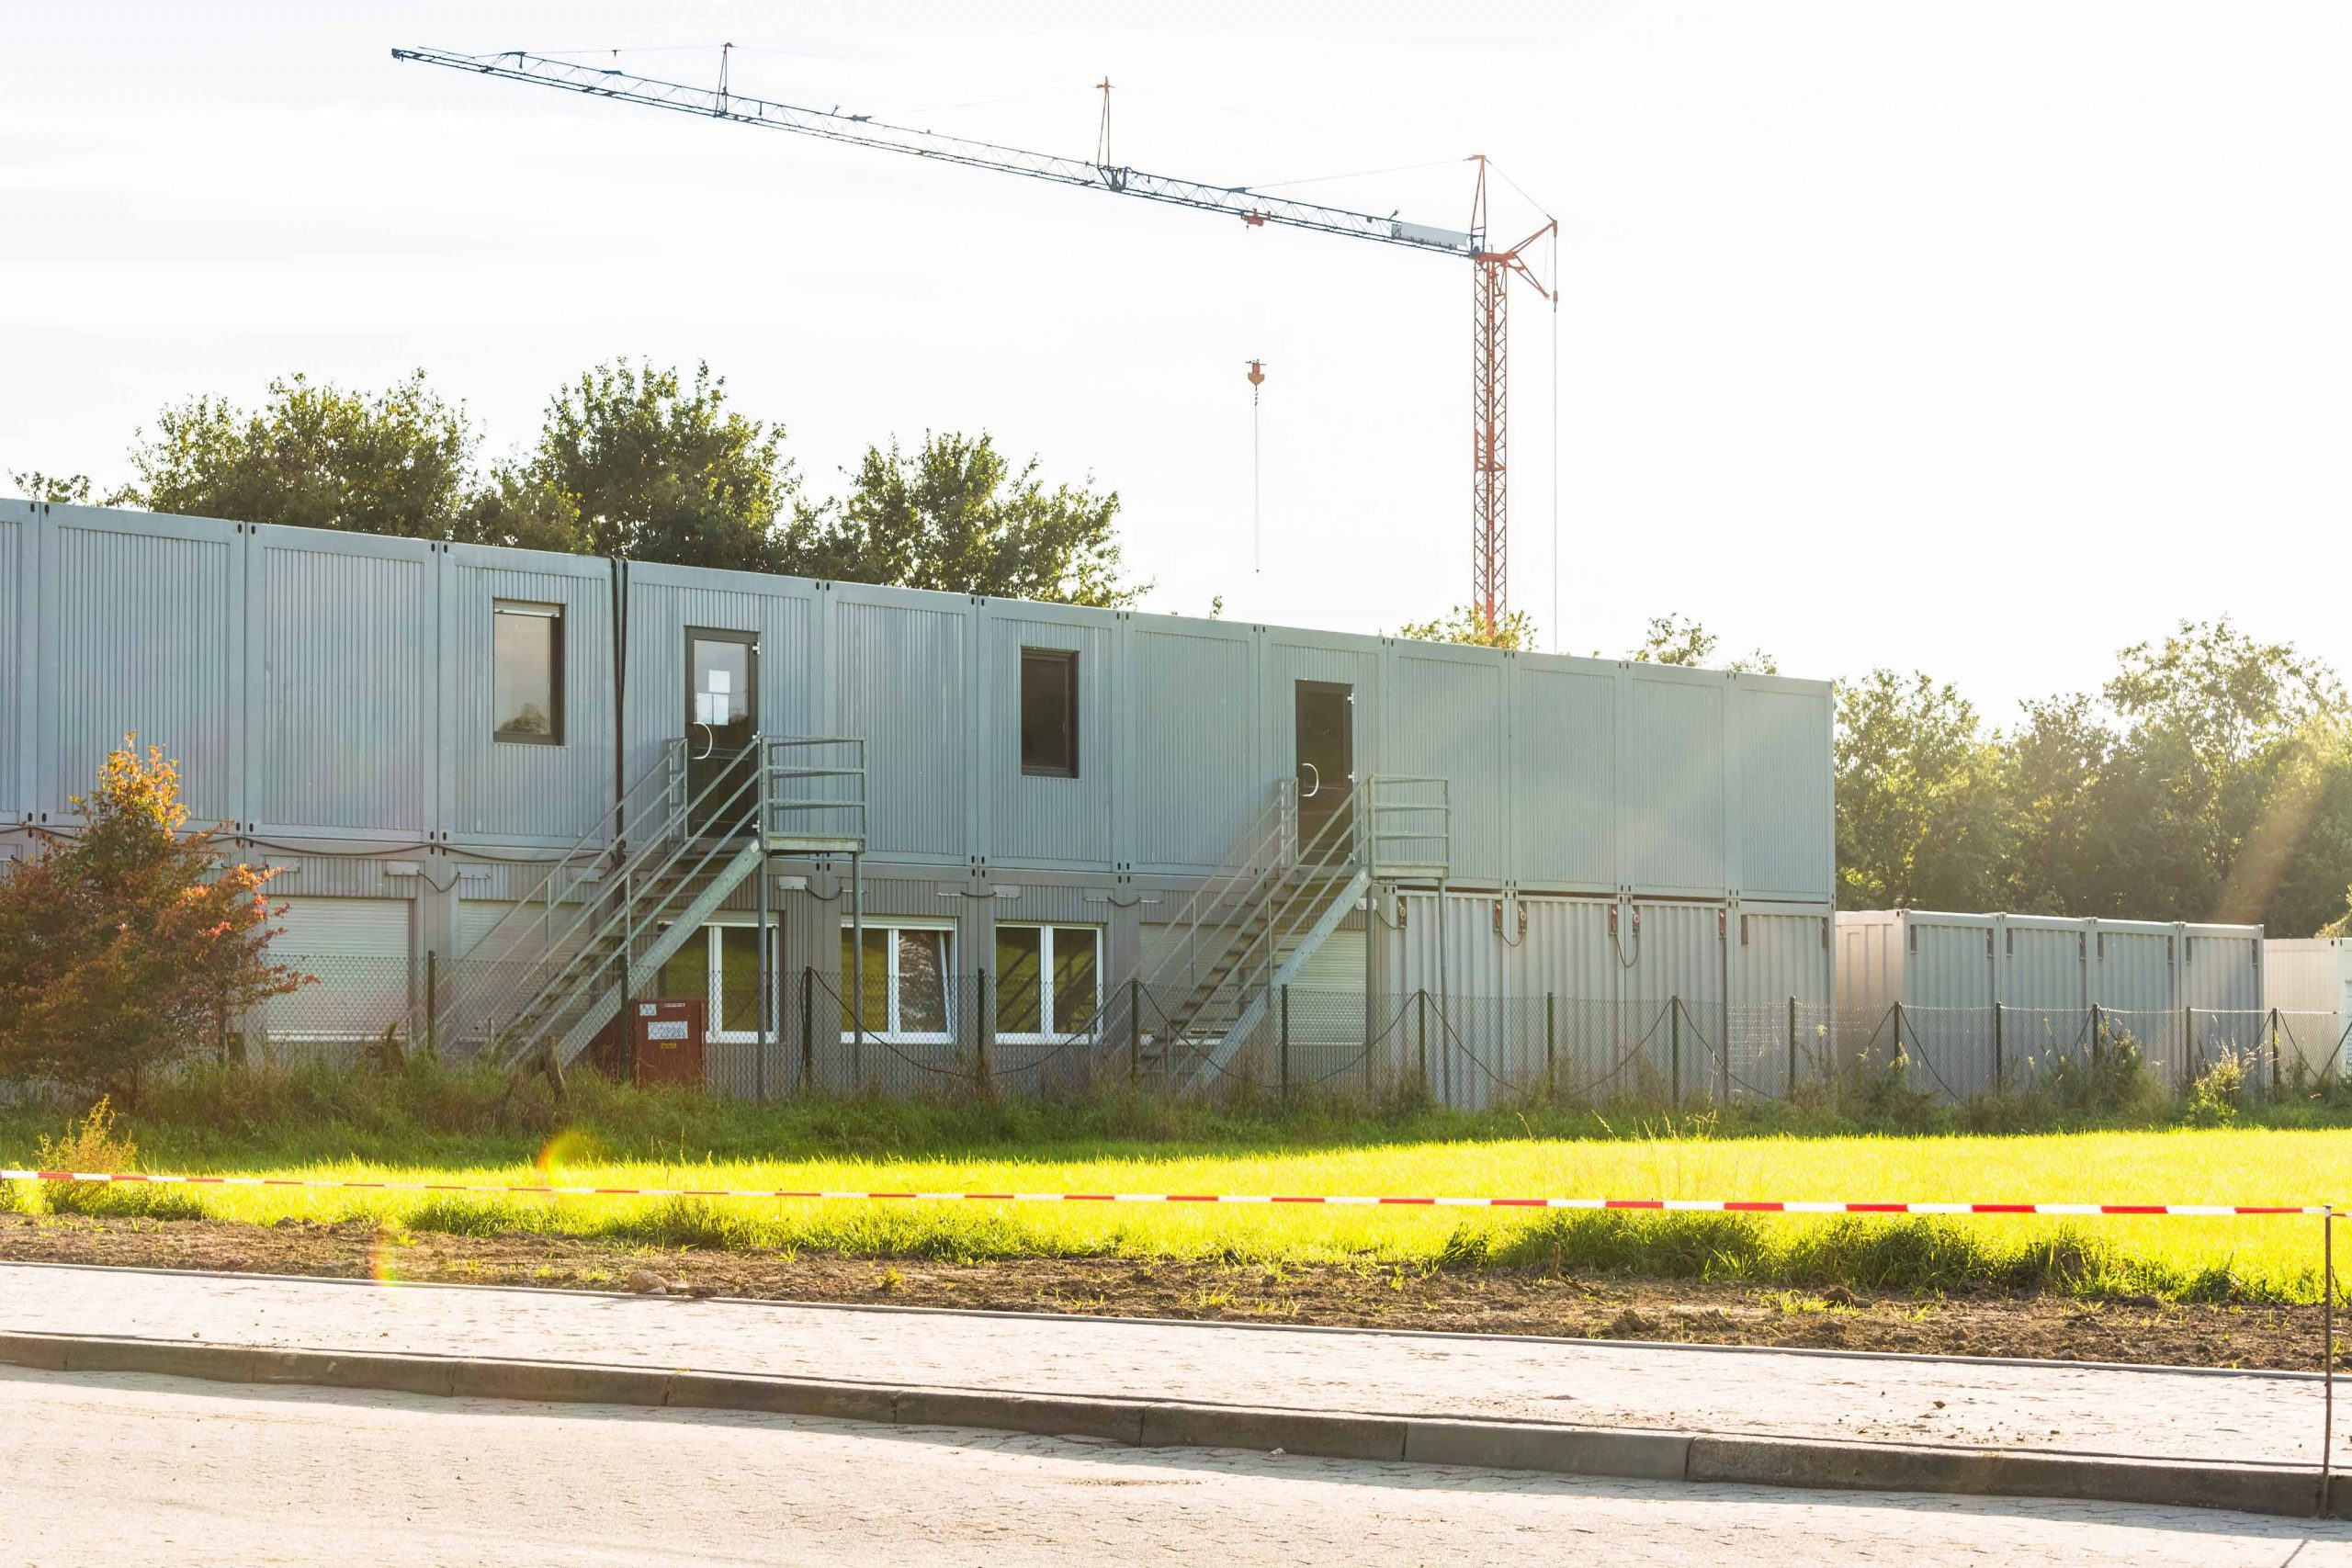 Module-T Prefabricated Worksite Containers in the Caribbean